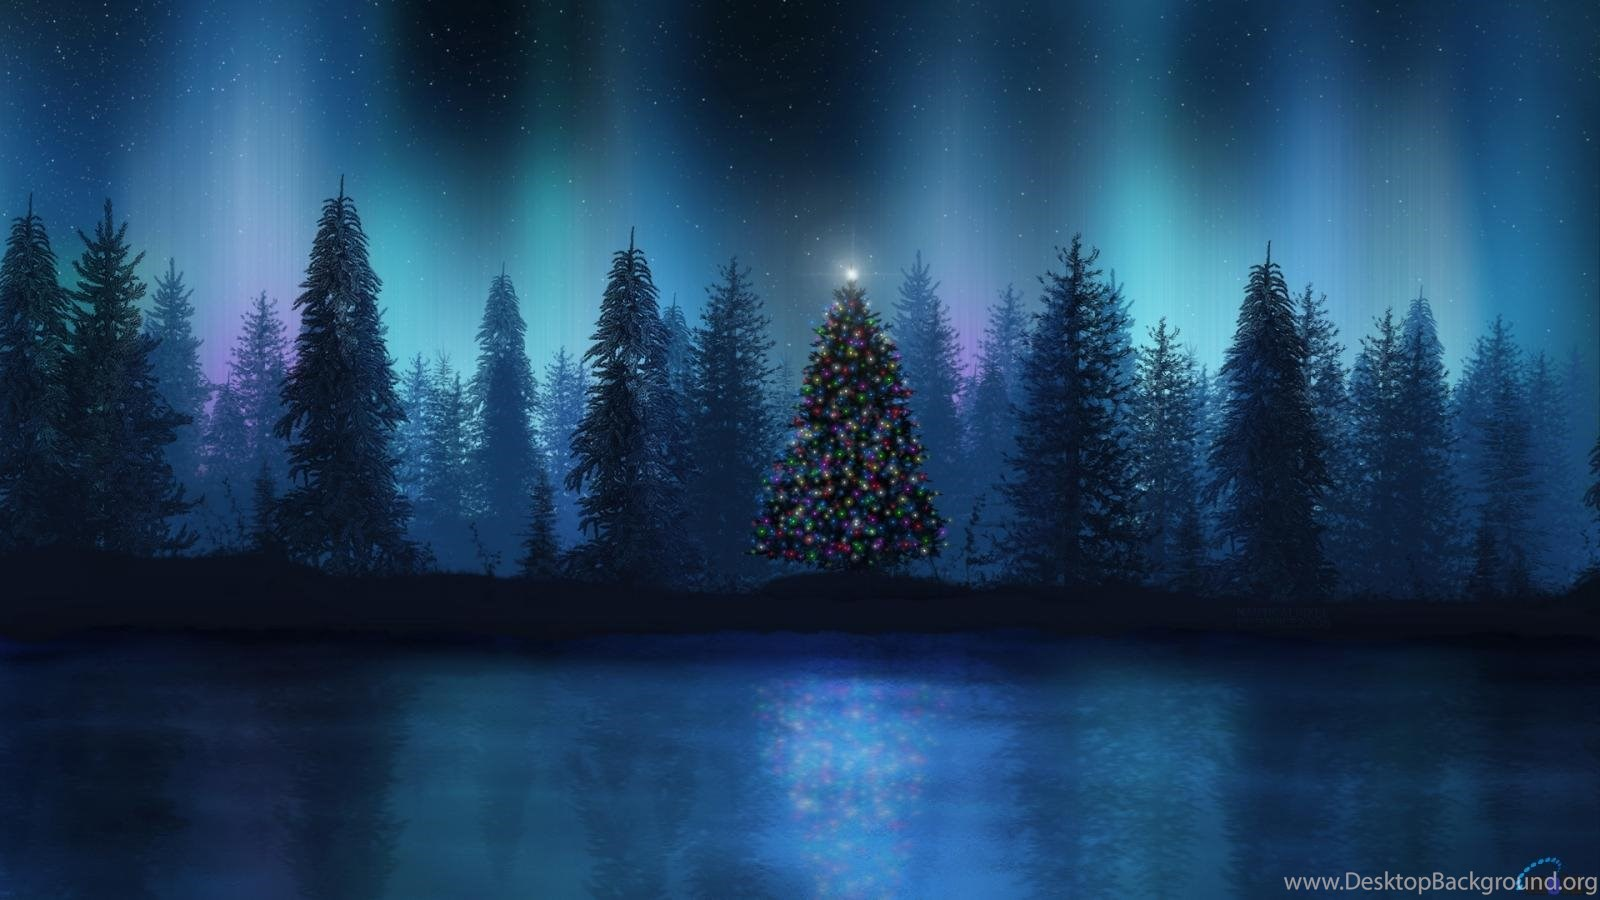 download wallpapers aurora at christmas night (1600 x 900